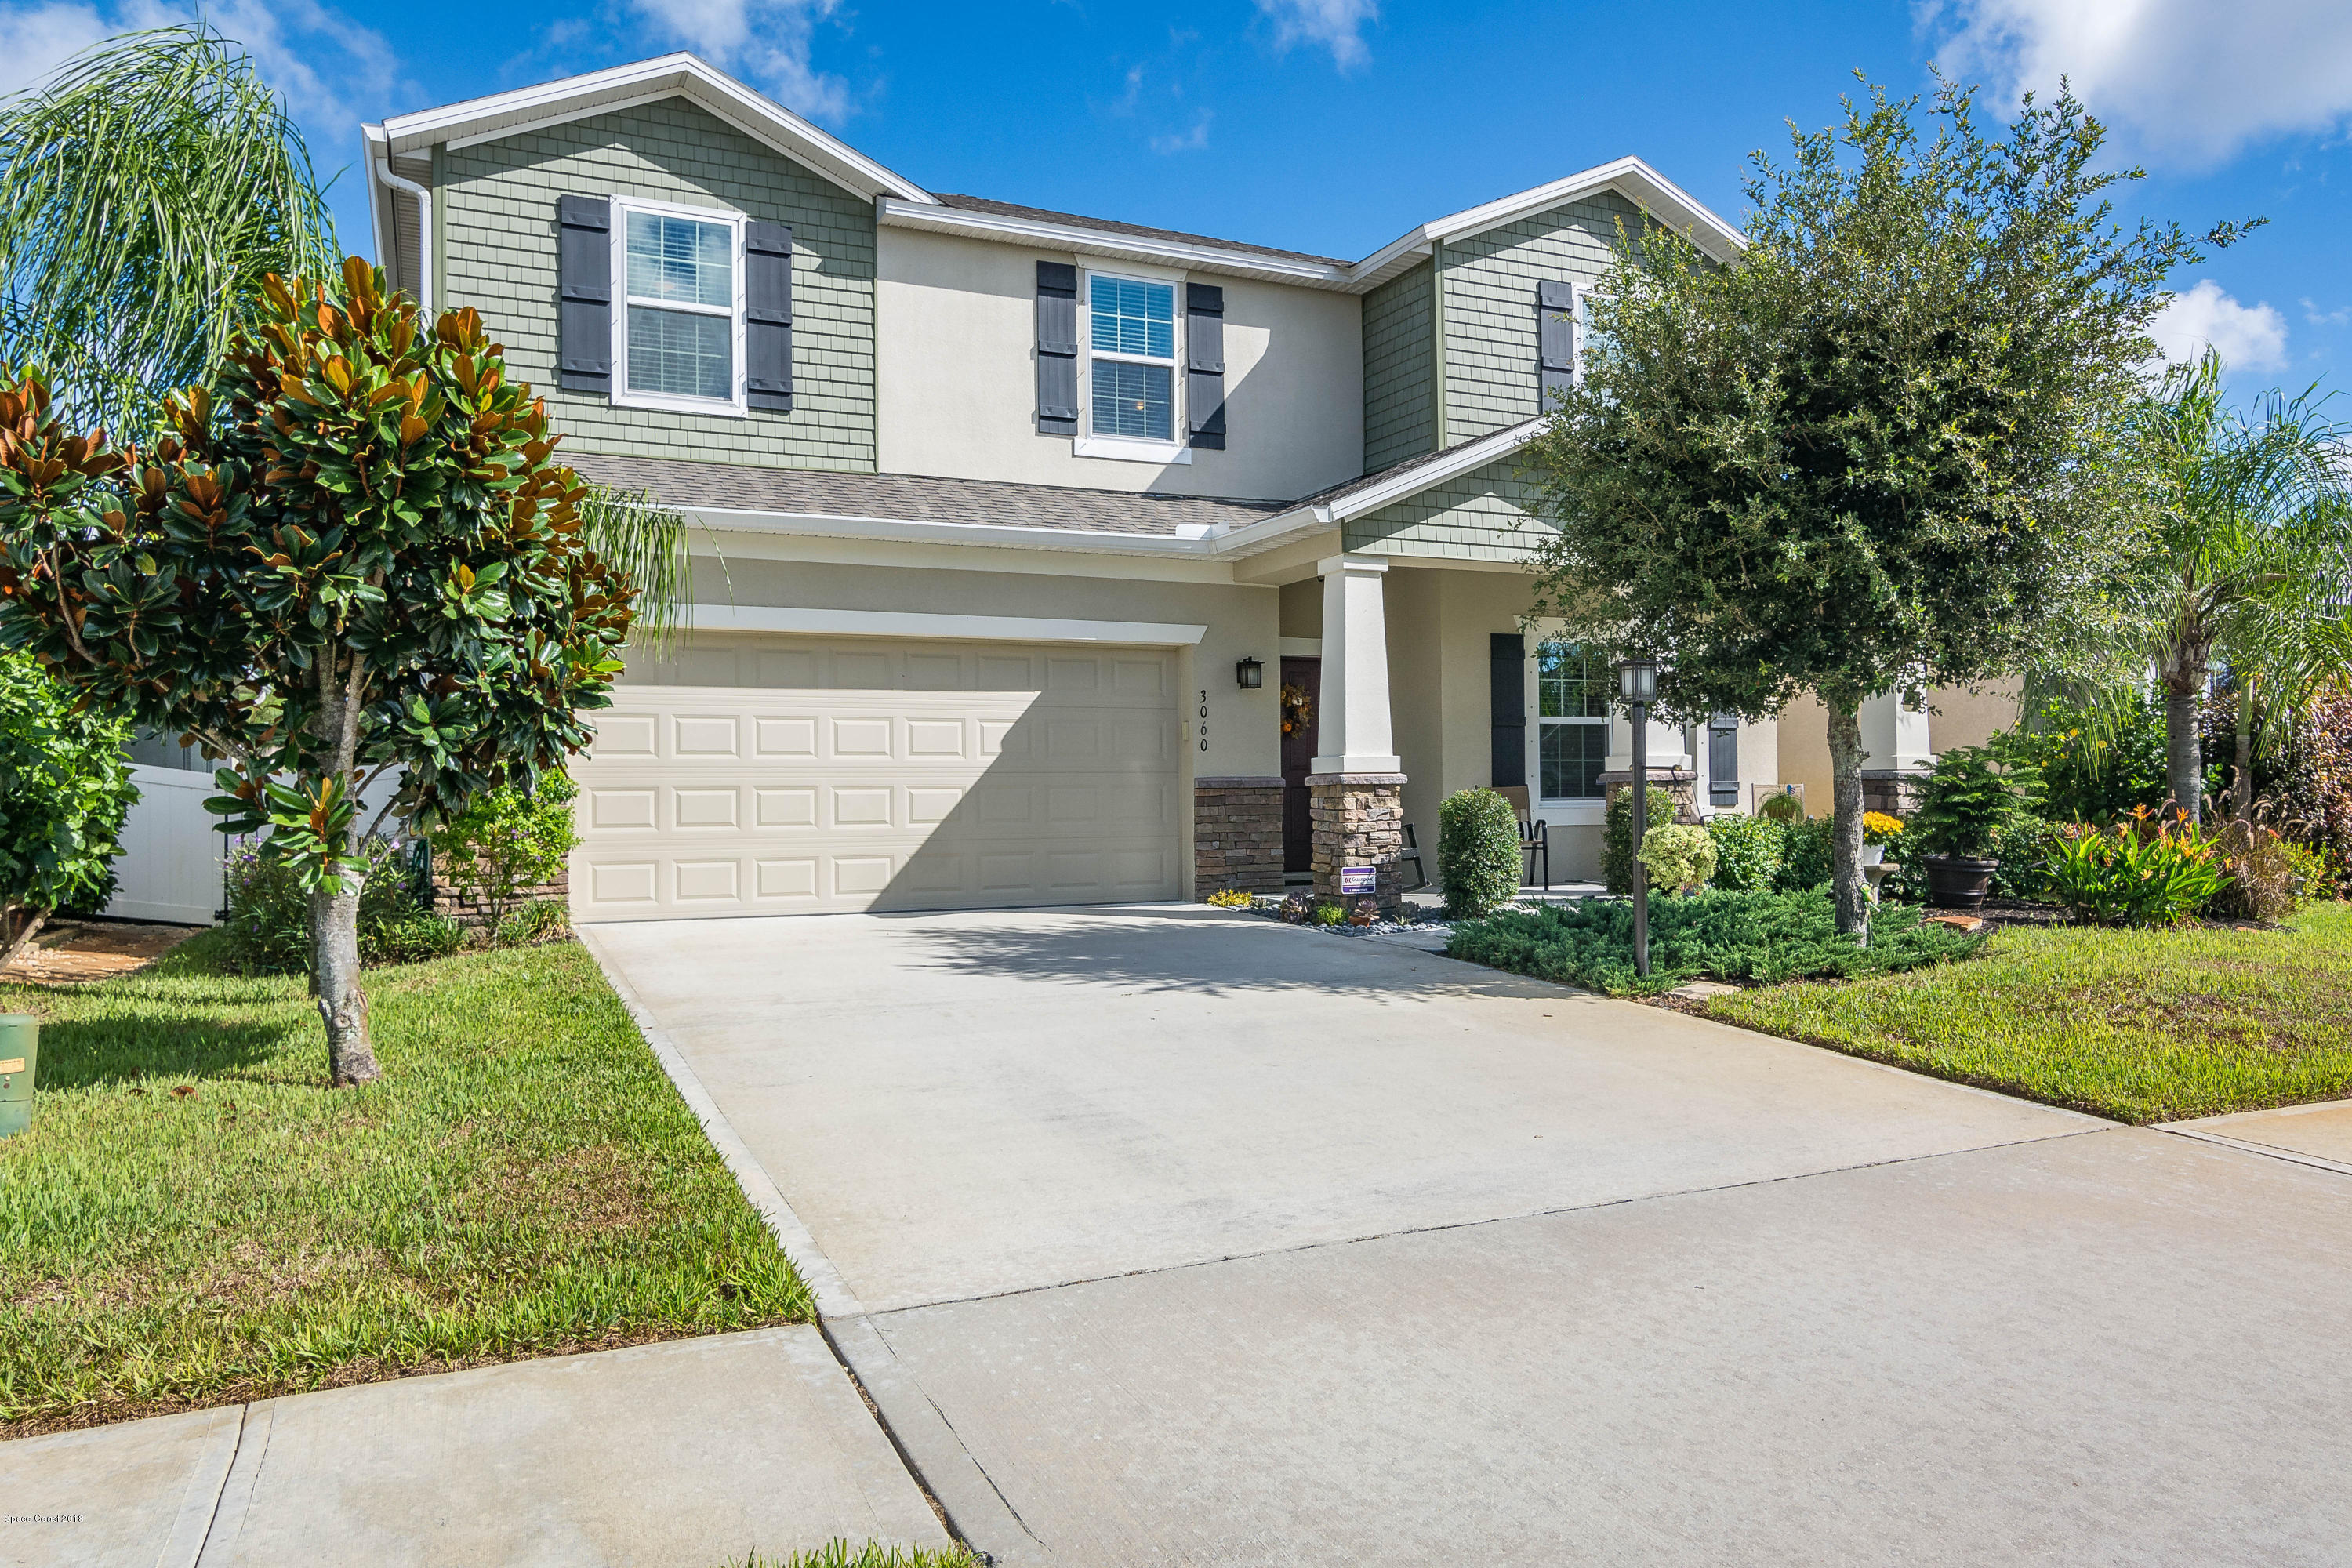 Single Family Home for Sale at 3060 Constellation 3060 Constellation Melbourne, Florida 32940 United States